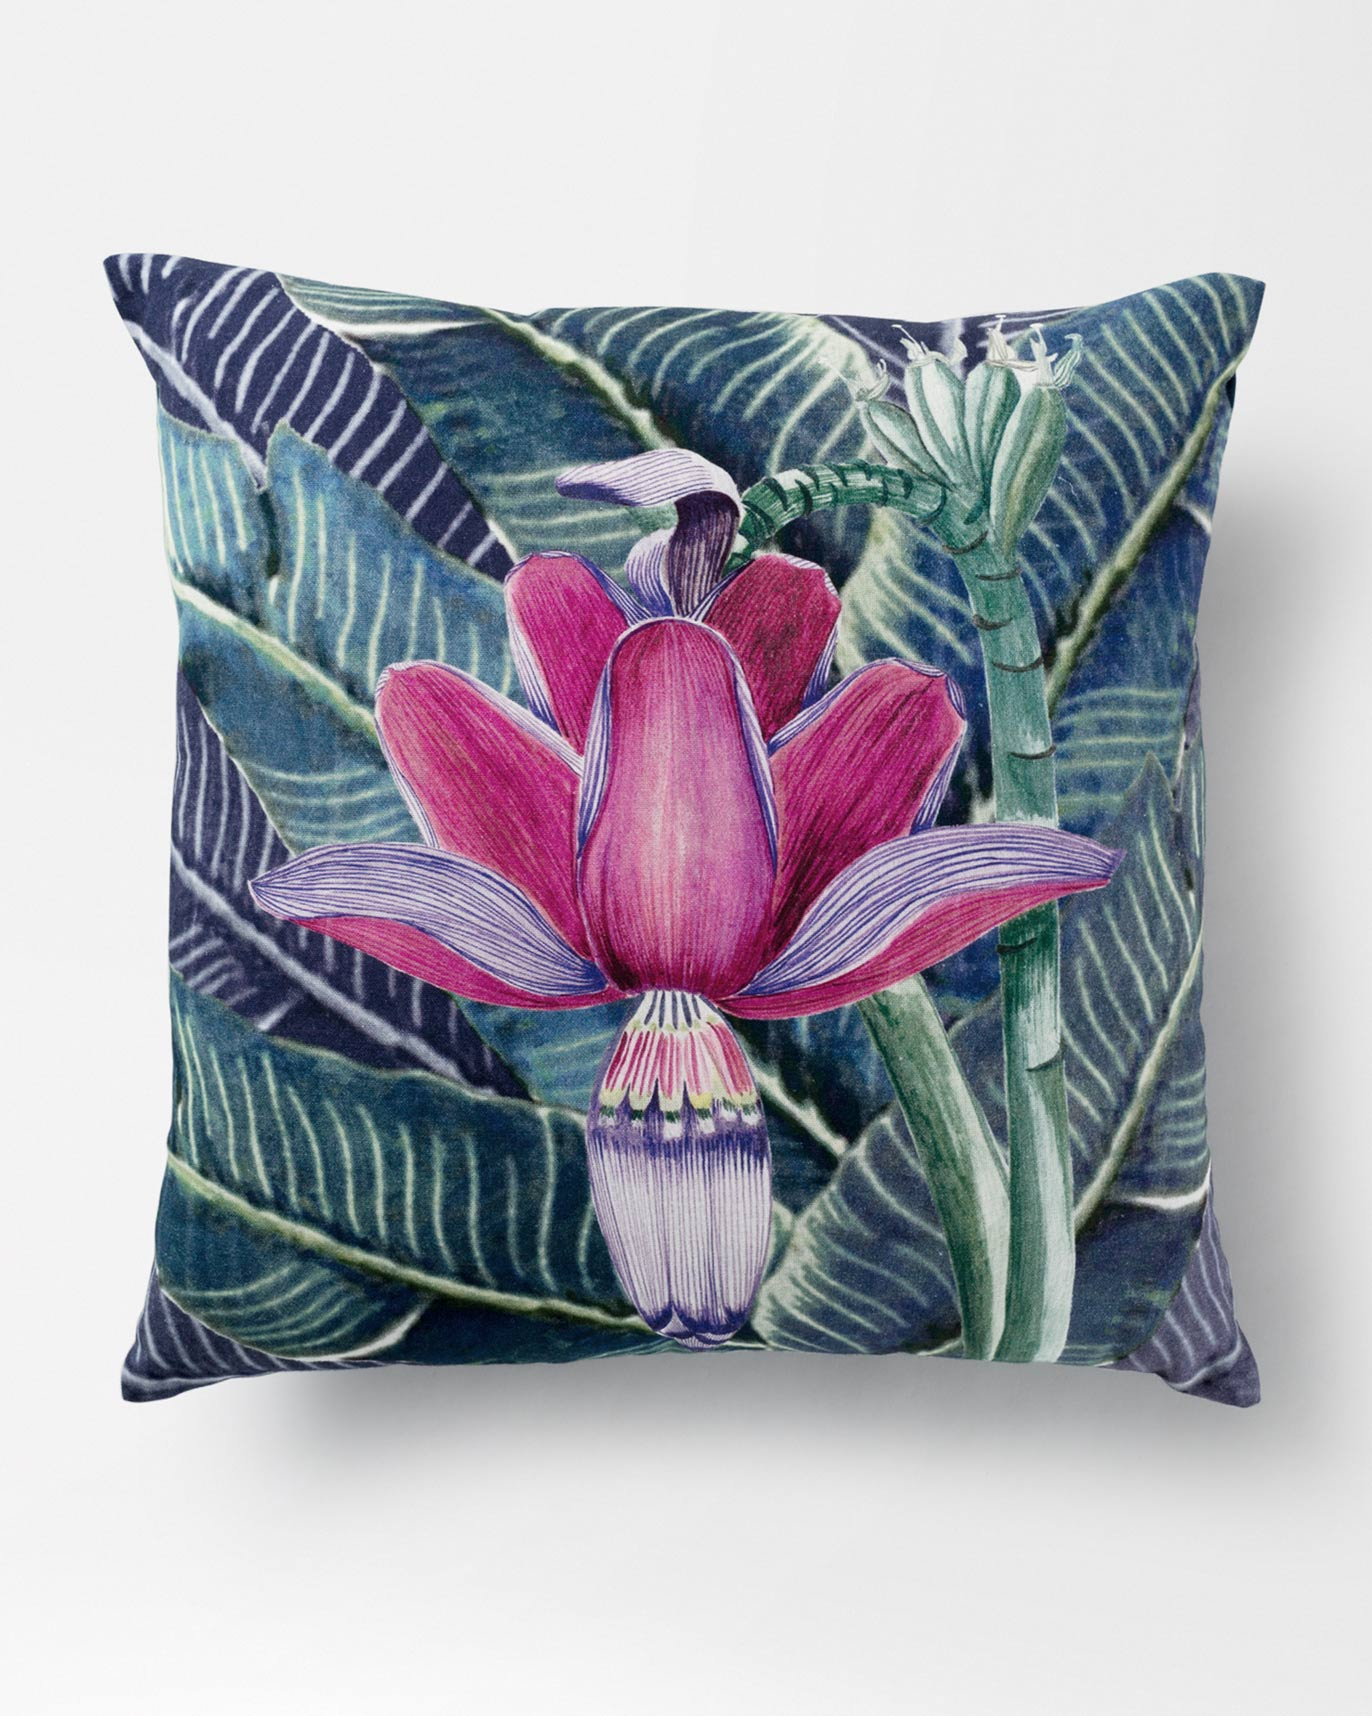 Banana Flower Cushion From House Home Collection At Nicobar